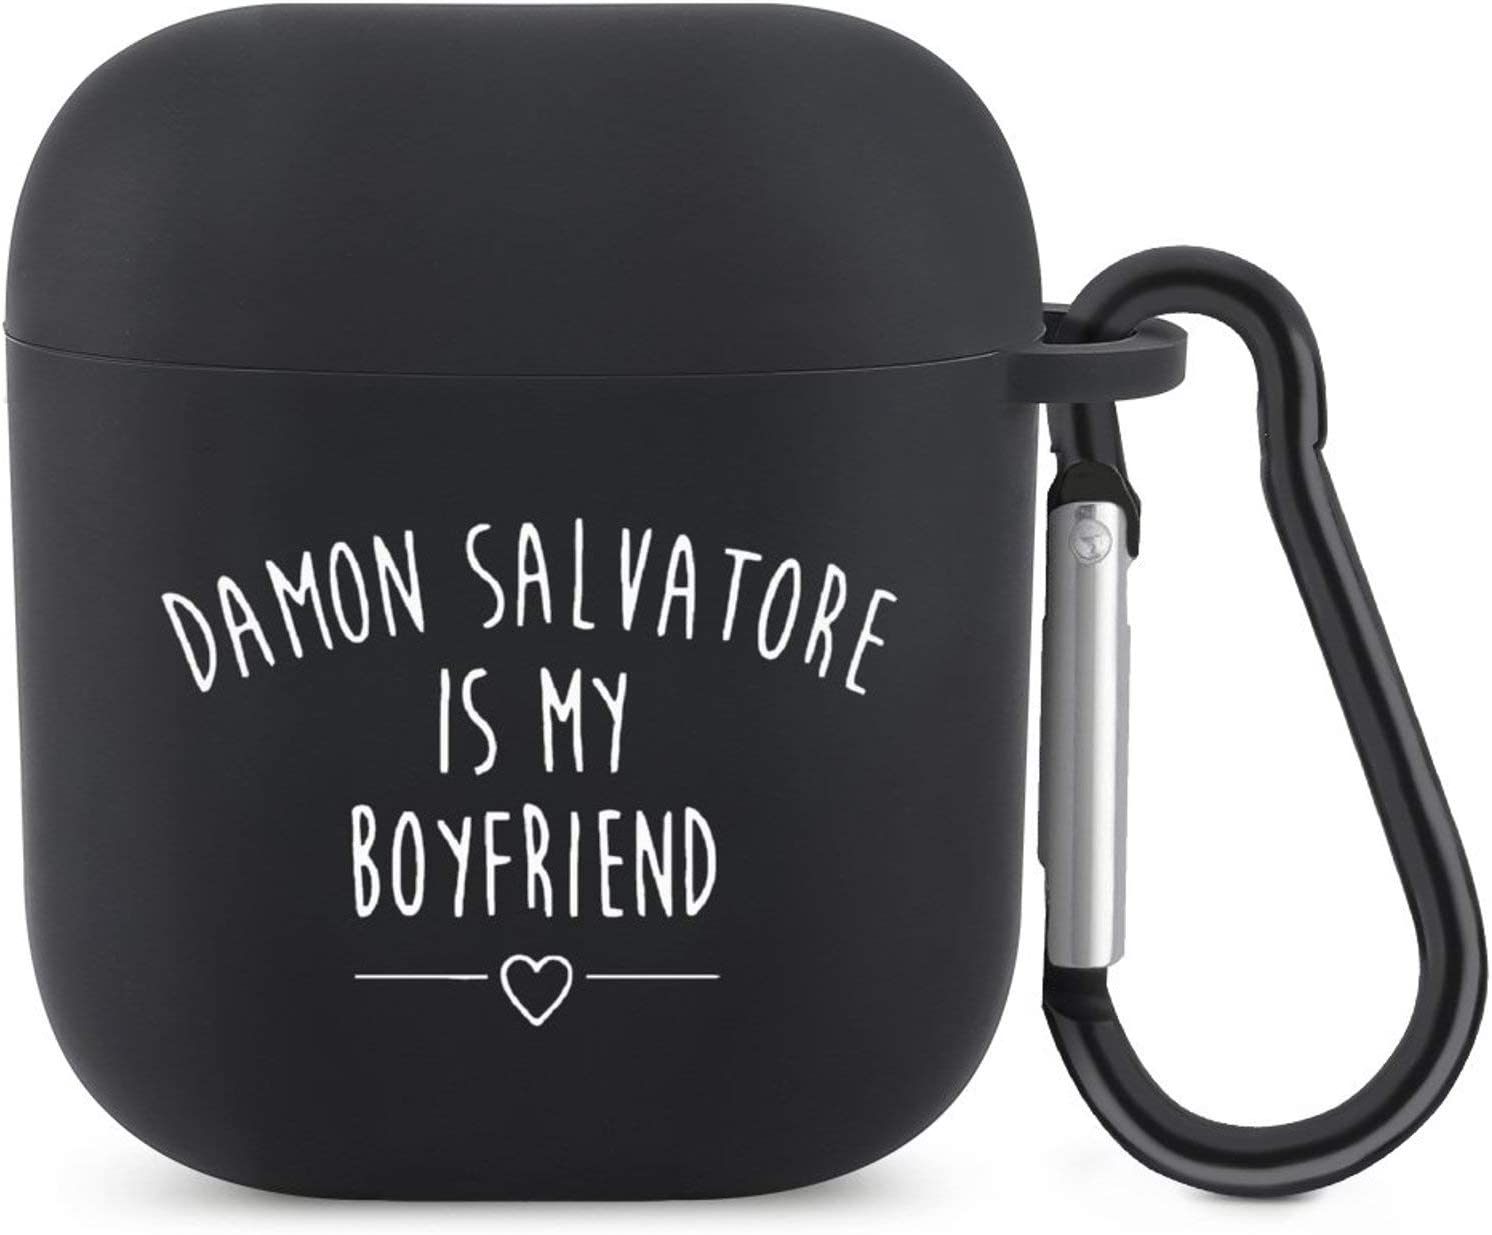 AirPods Case, Damon Salvatore is My Boyfriend Protective Silicone Cover Compatible with Apple AirPods 2 and 1